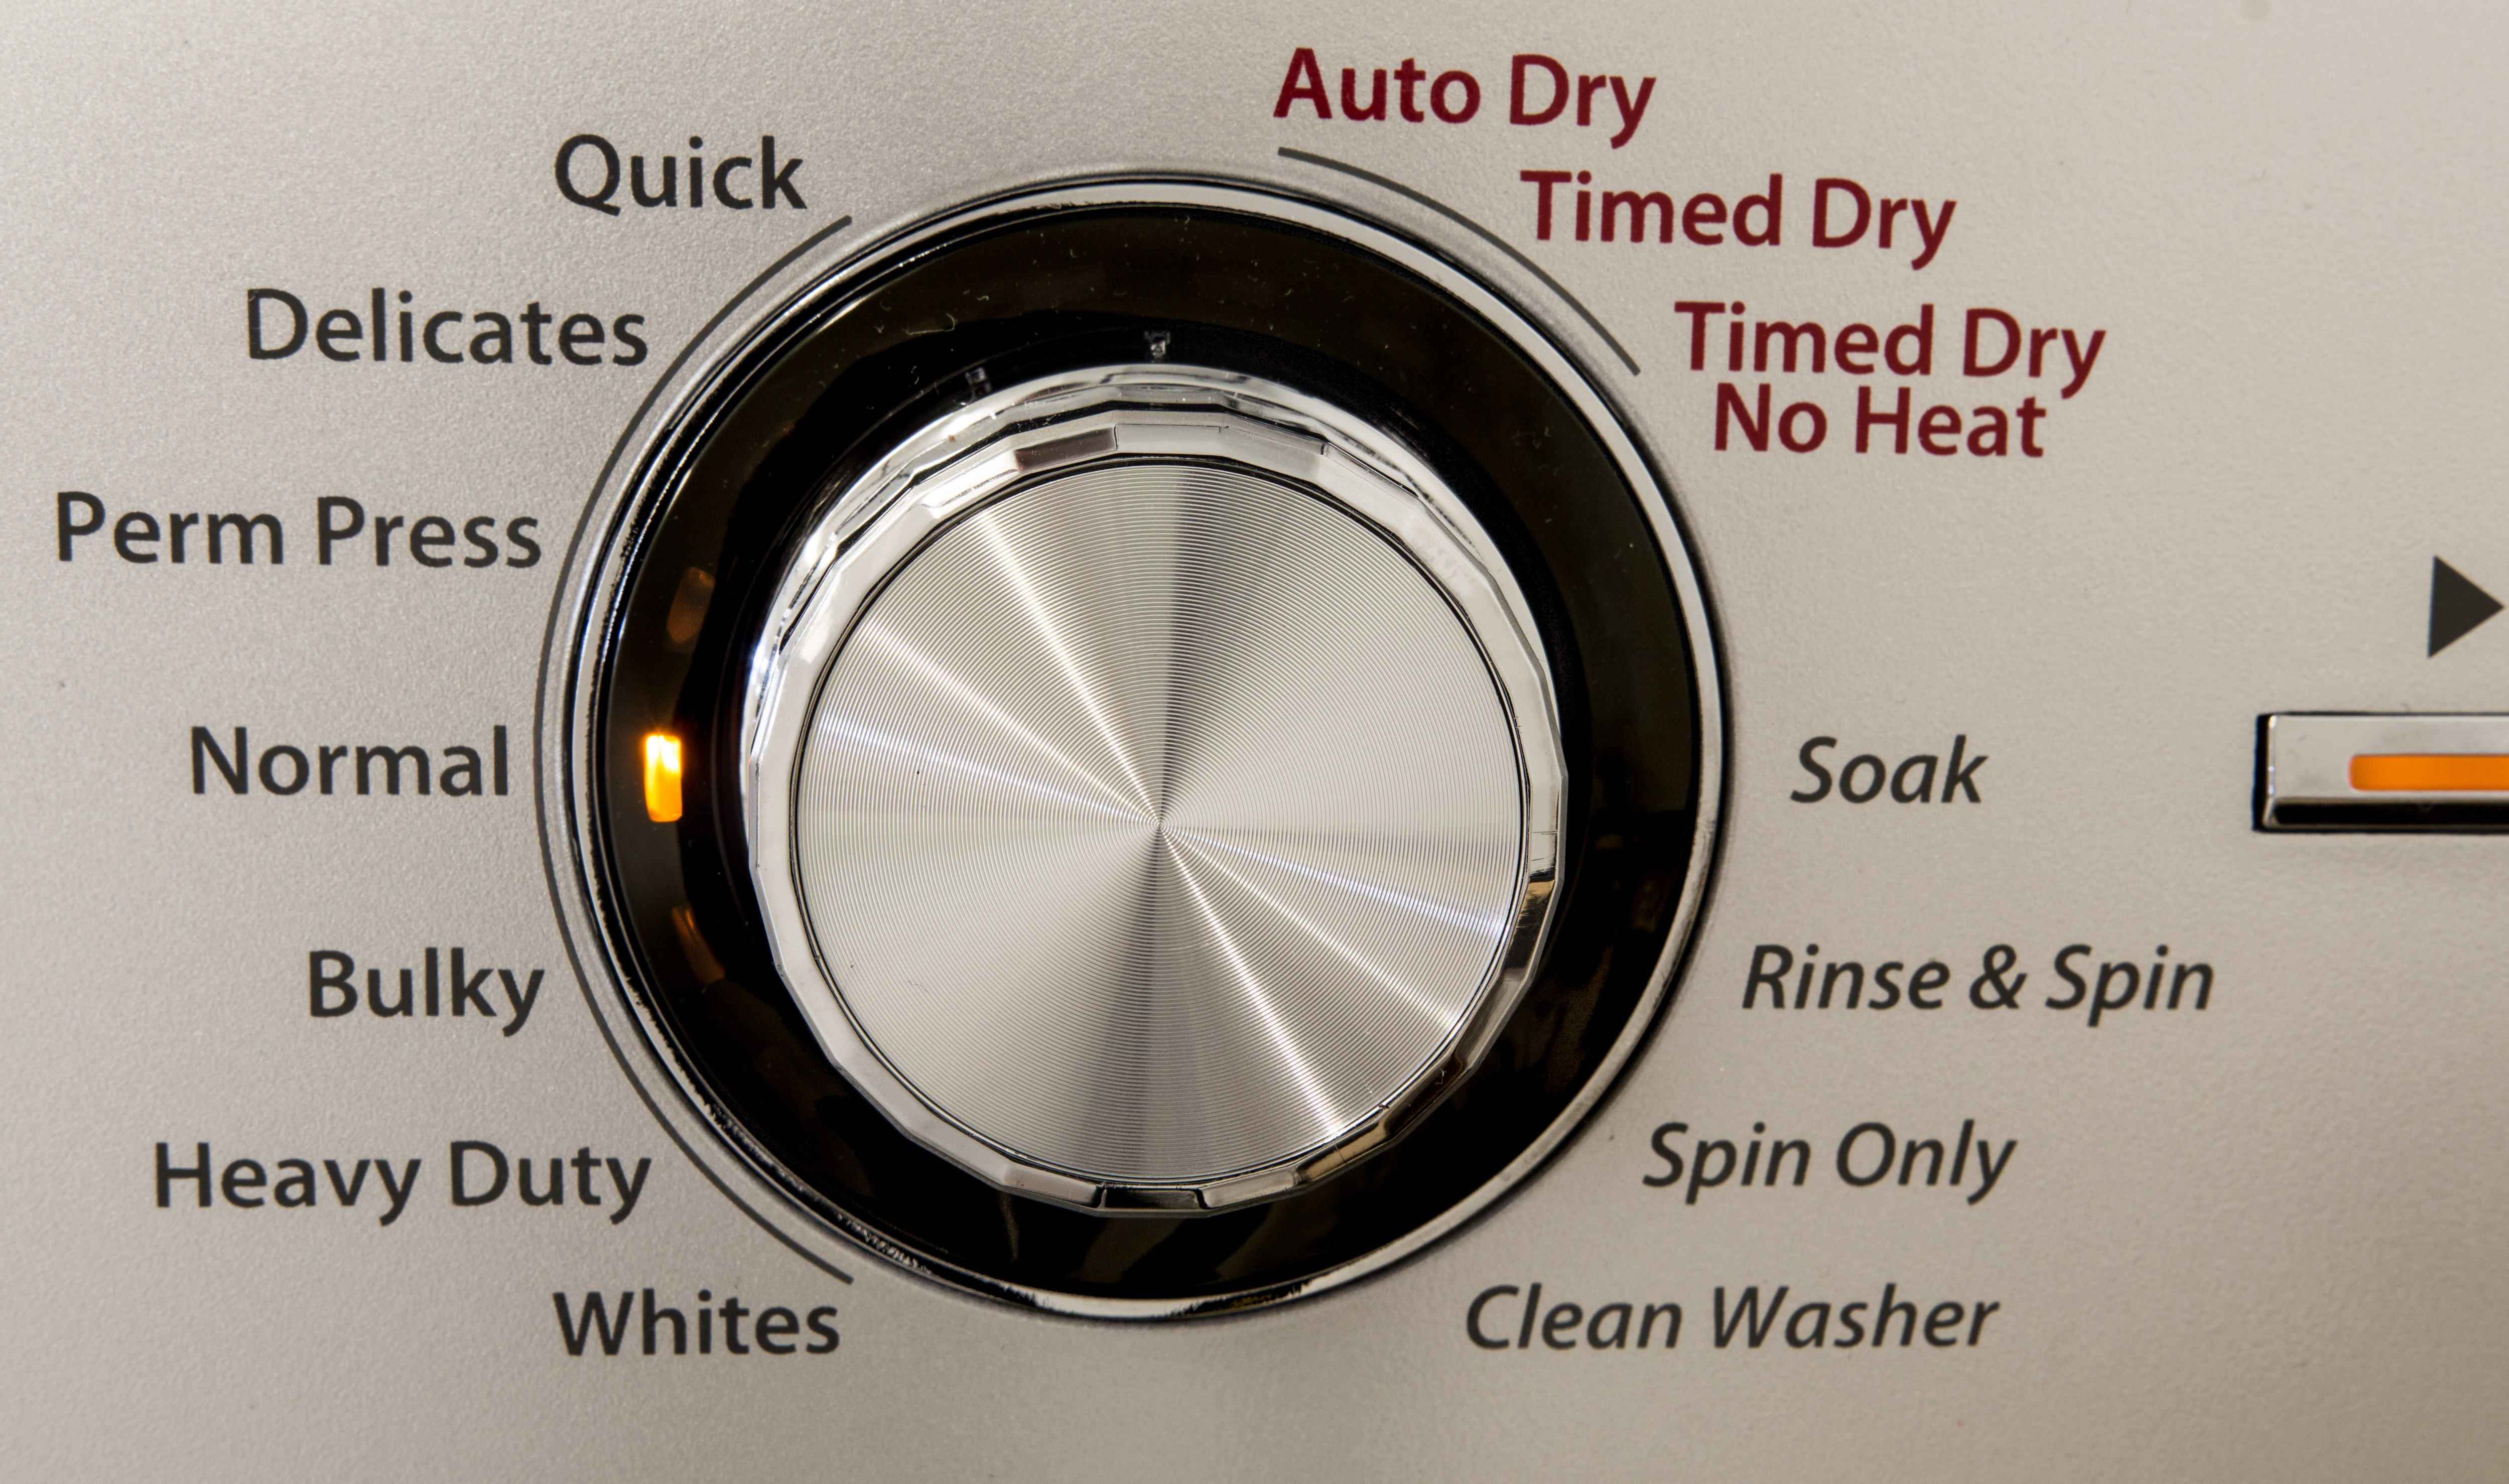 The Haier has 8-washing cycles and 3-drying cycles.